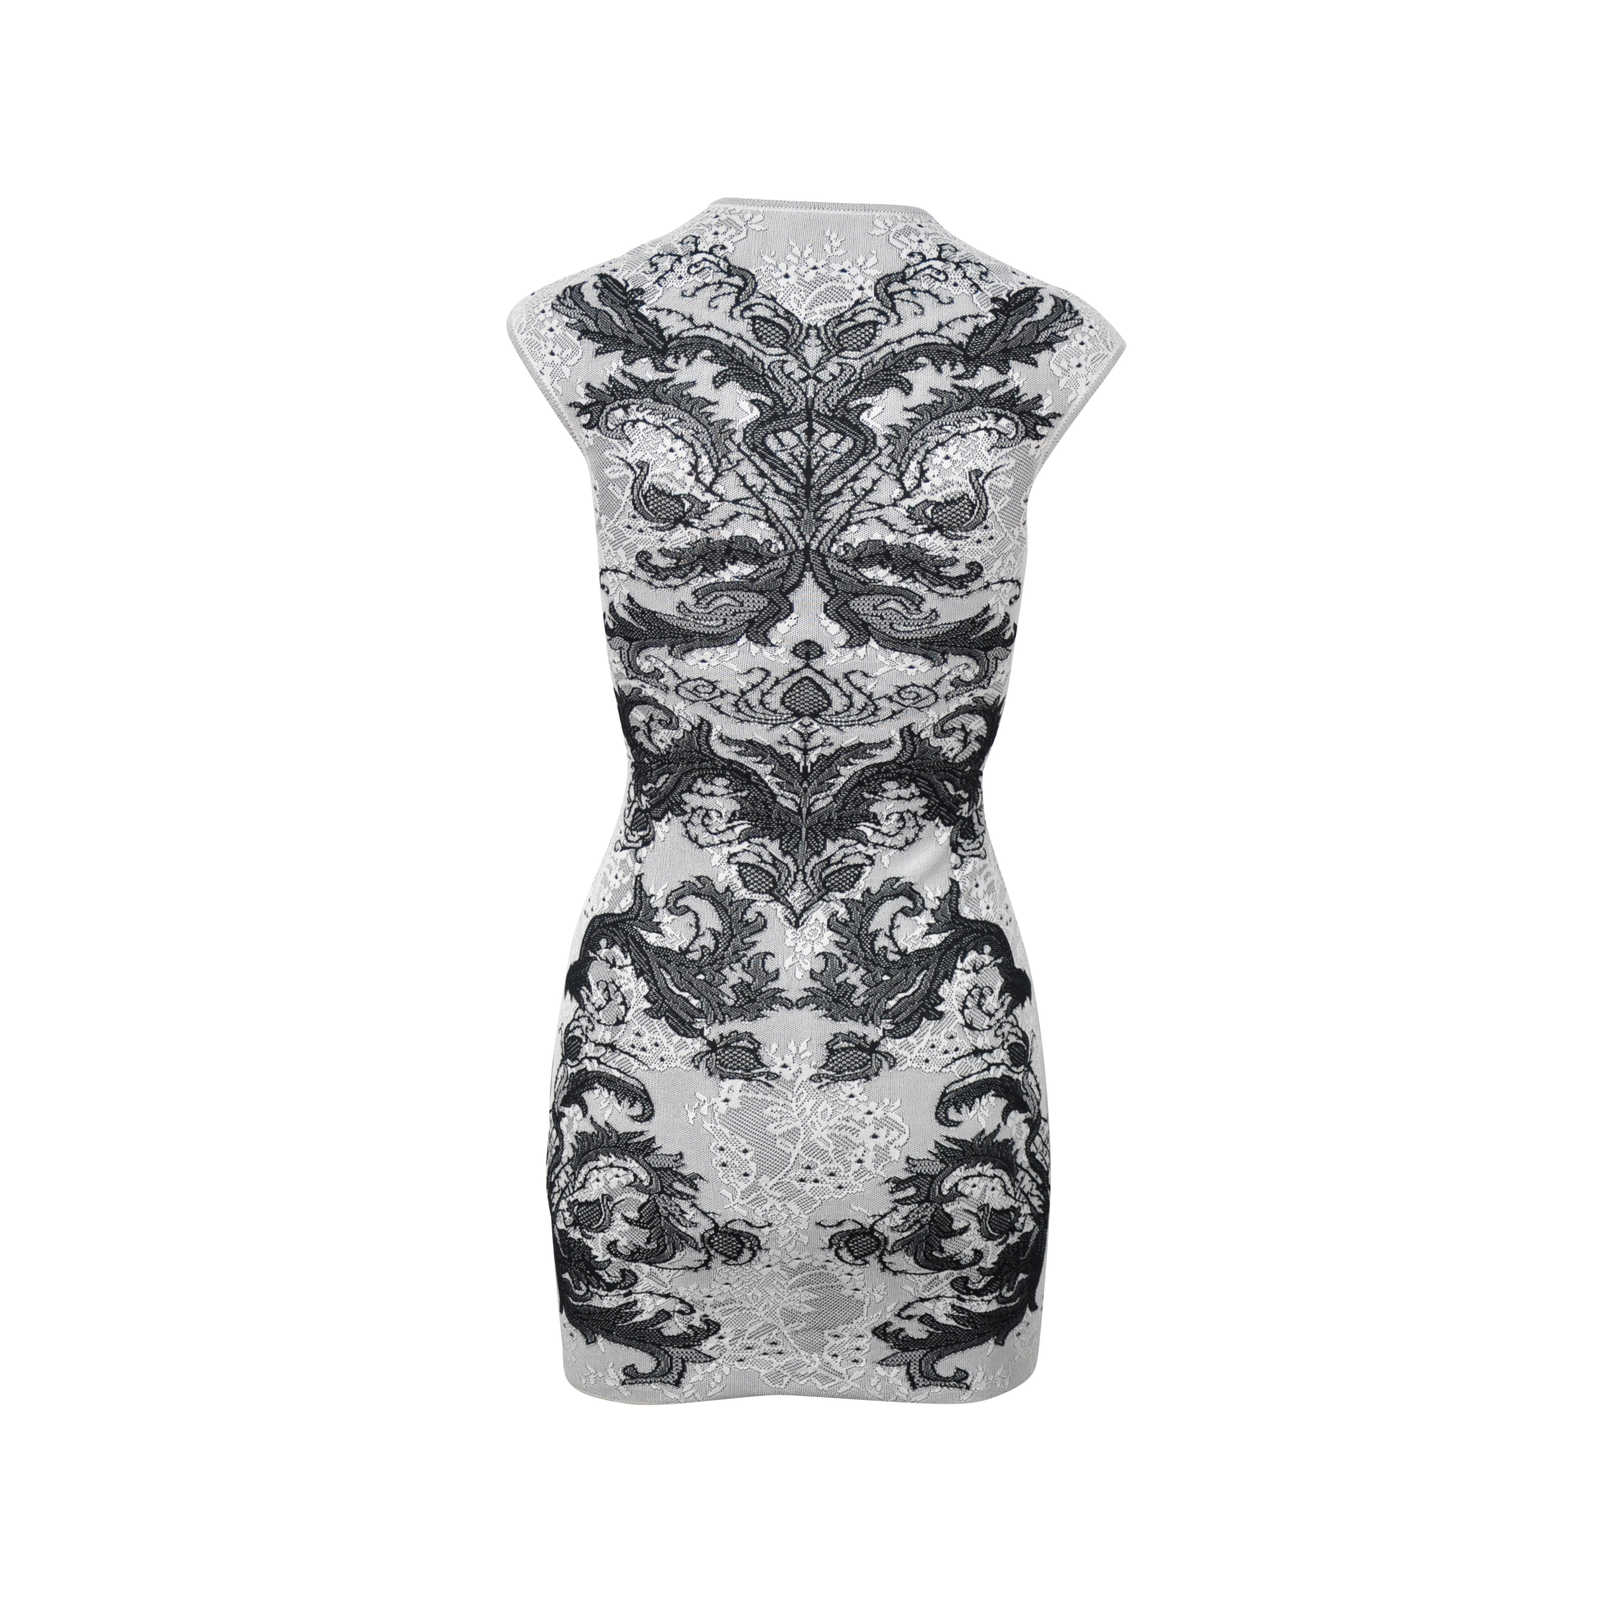 bb9935ab602 ... Authentic Second Hand Alexander McQueen Spine Lace Crochet Dress  (PSS-313-00014) ...